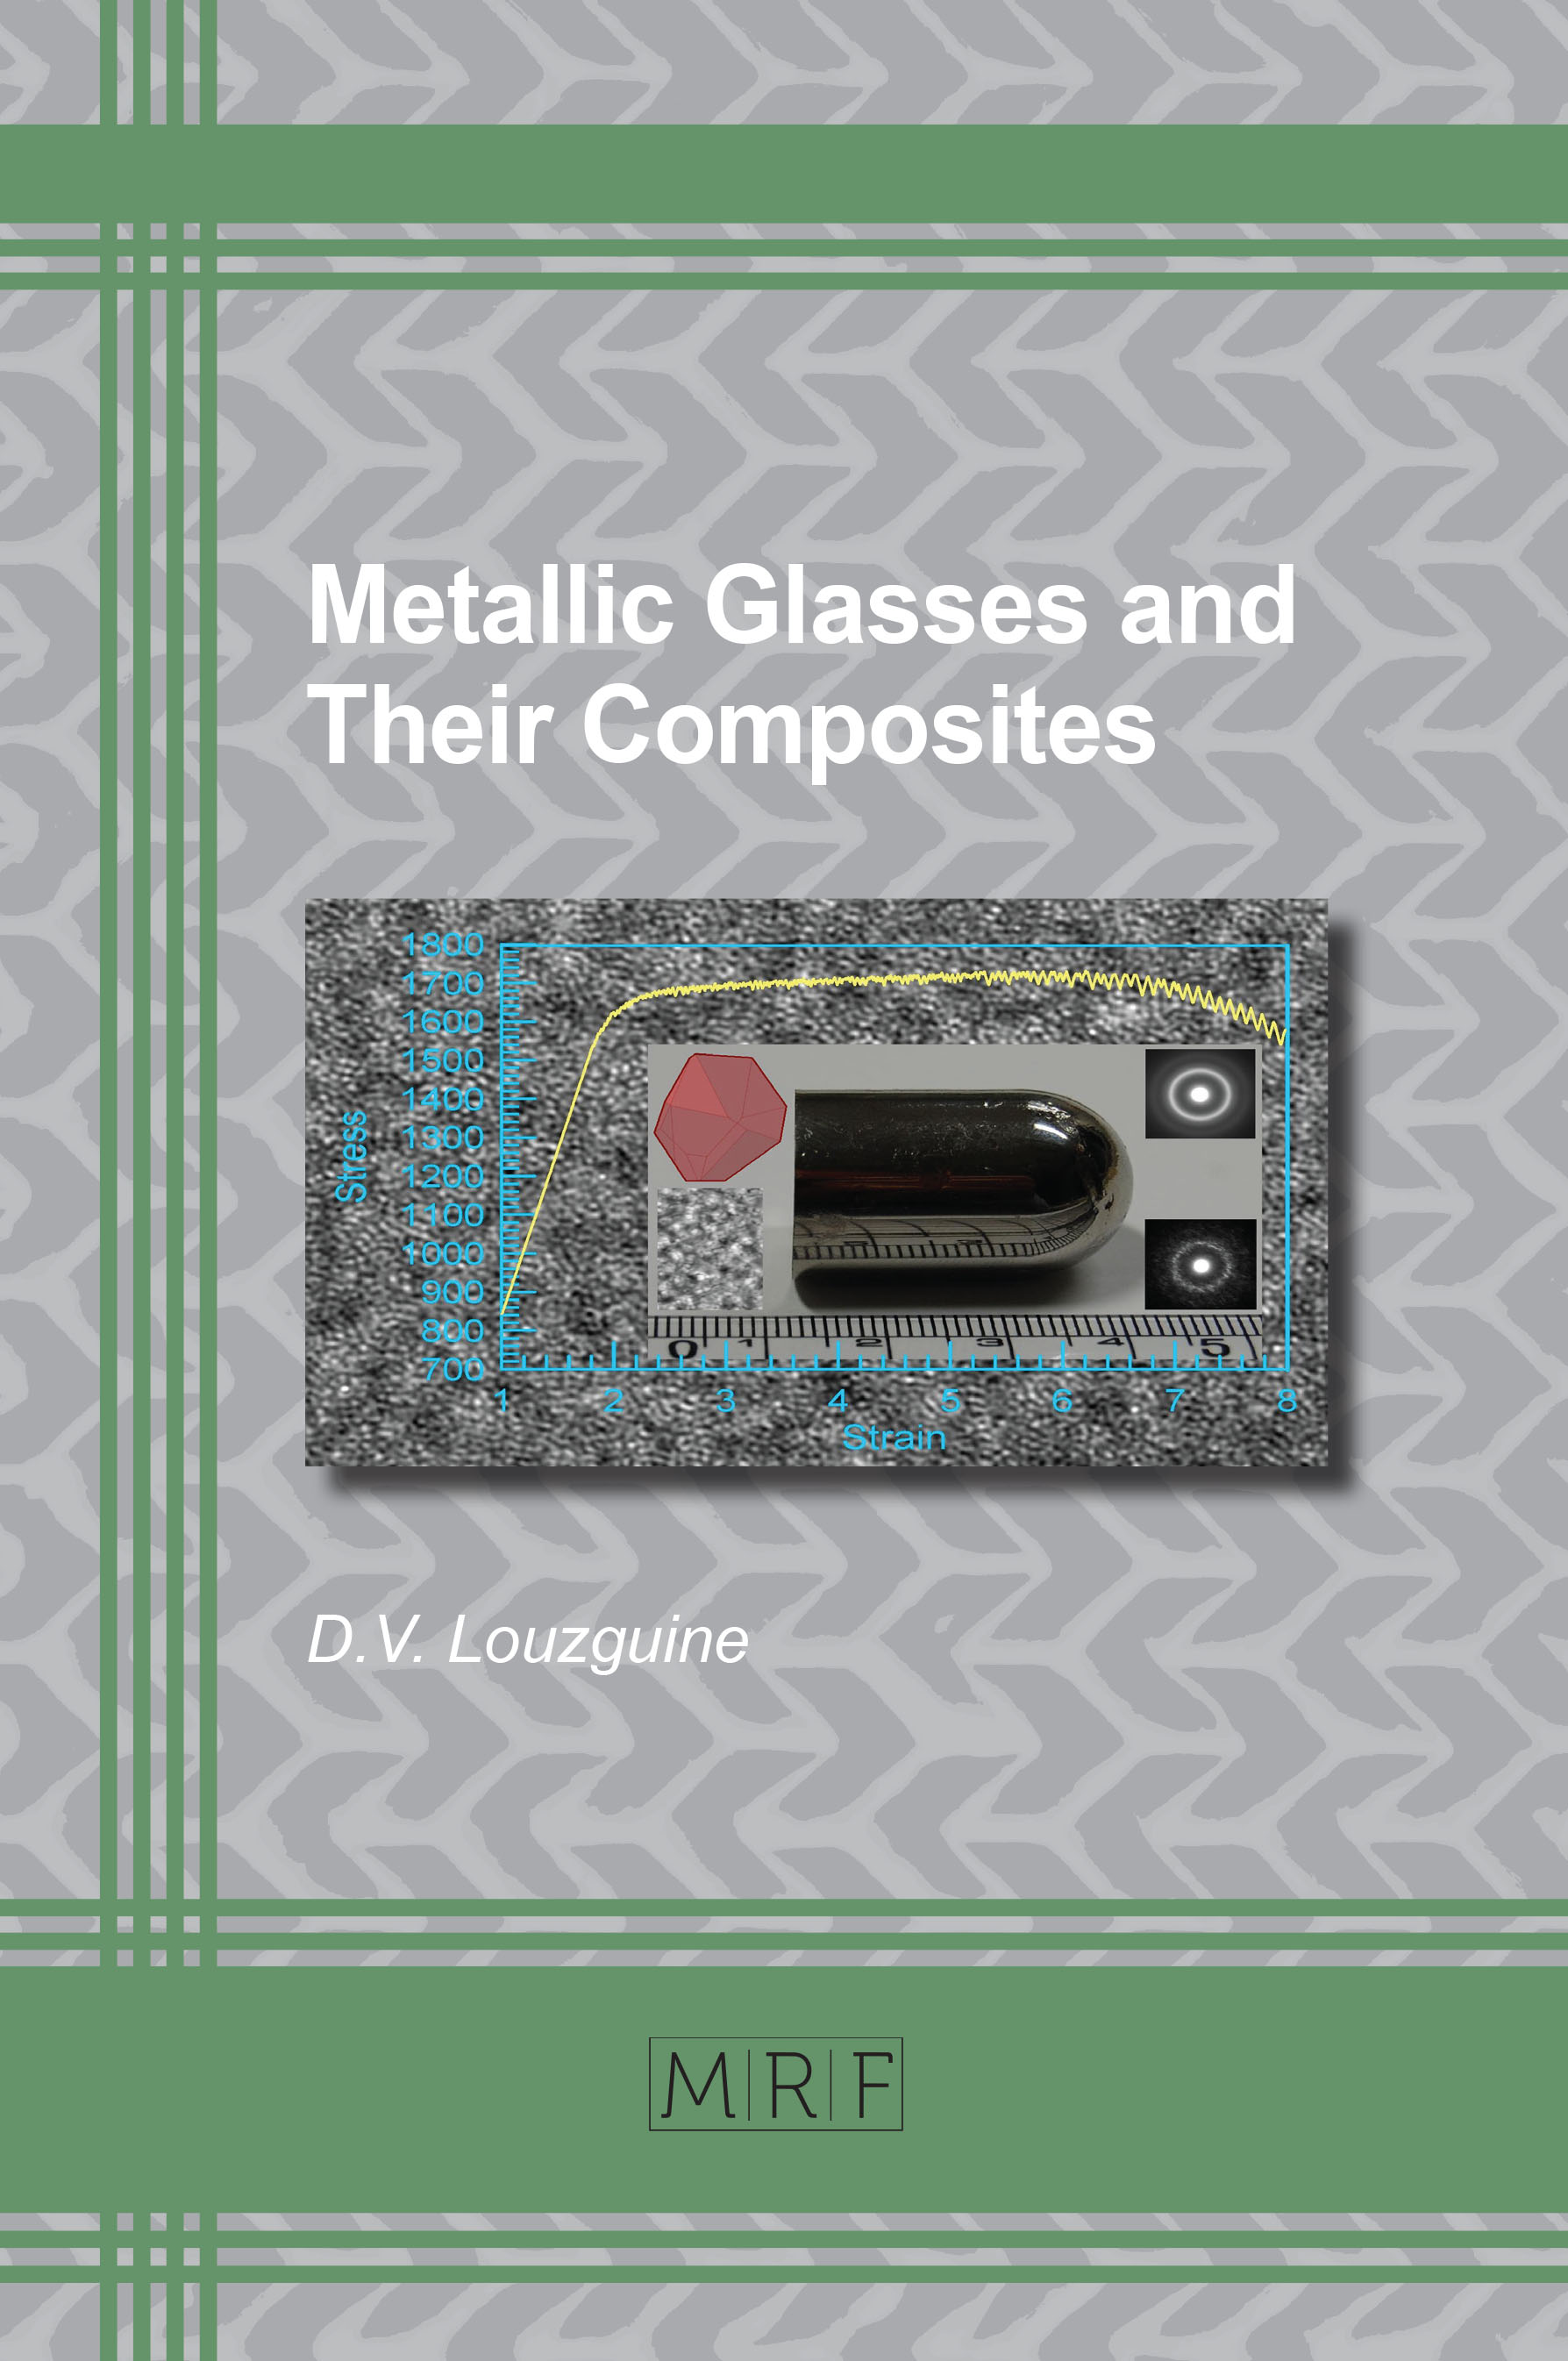 metallic glasses and their